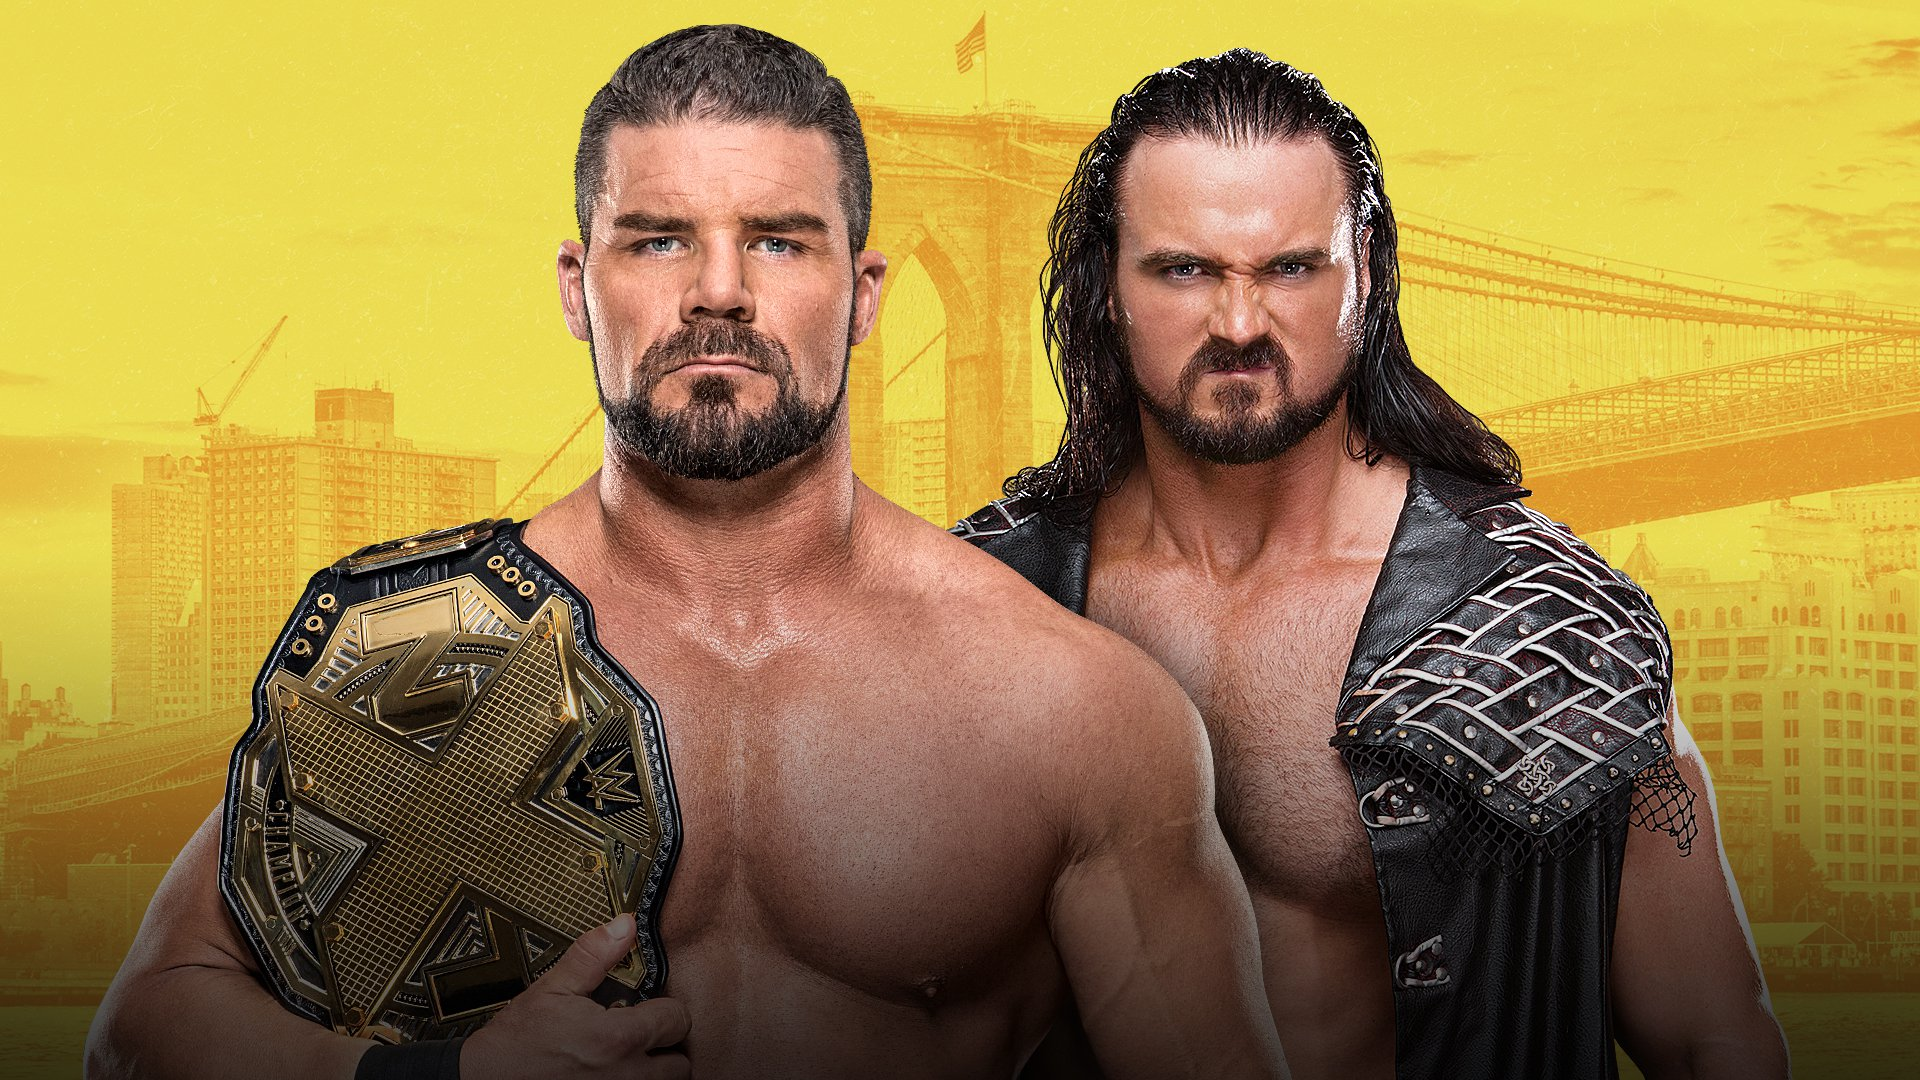 NXT TakeOver - Brooklyn III: Bobby Roode vs. Drew McIntyre